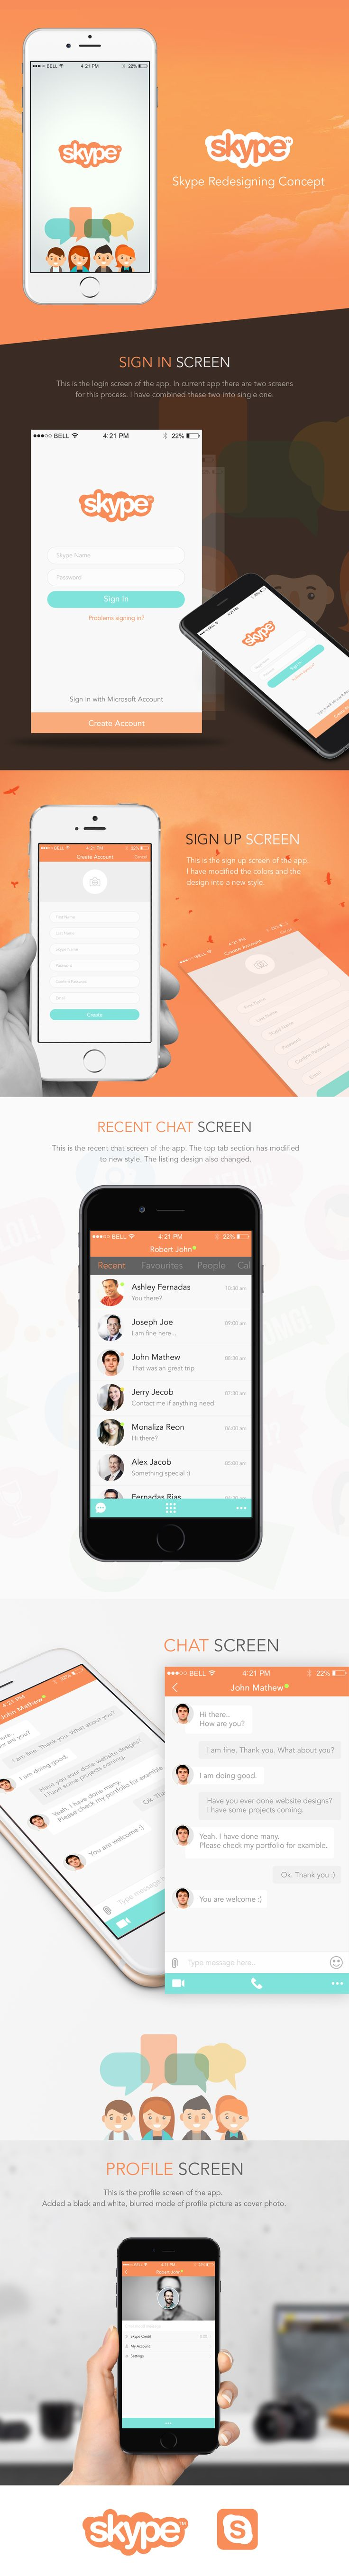 Skype Redesigning Concept on Behance